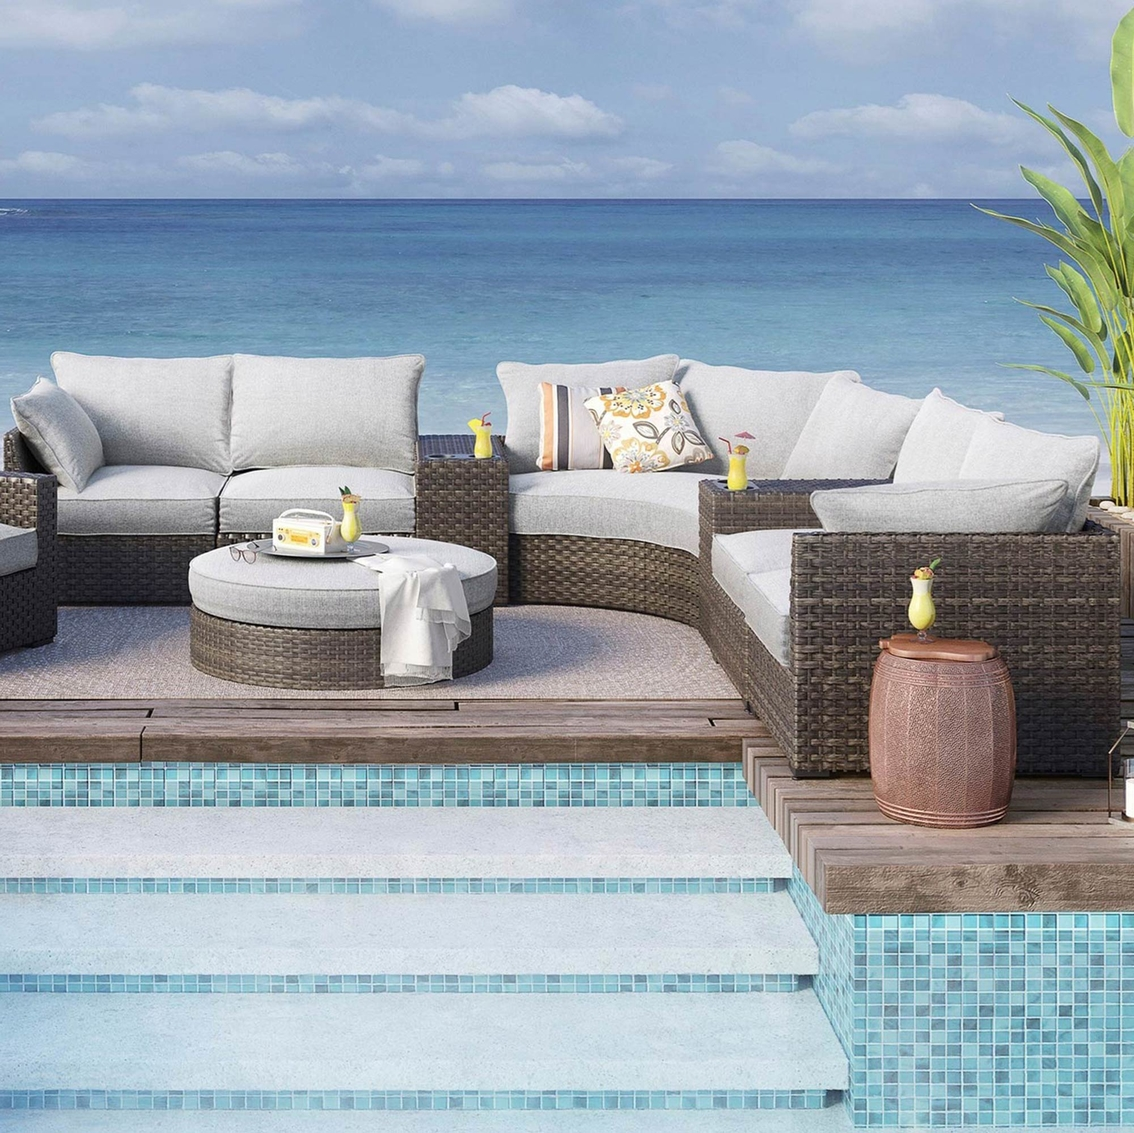 Genial Ashley Spring Dew 8 Pc. Curved Outdoor Sectional With Round Ottoman